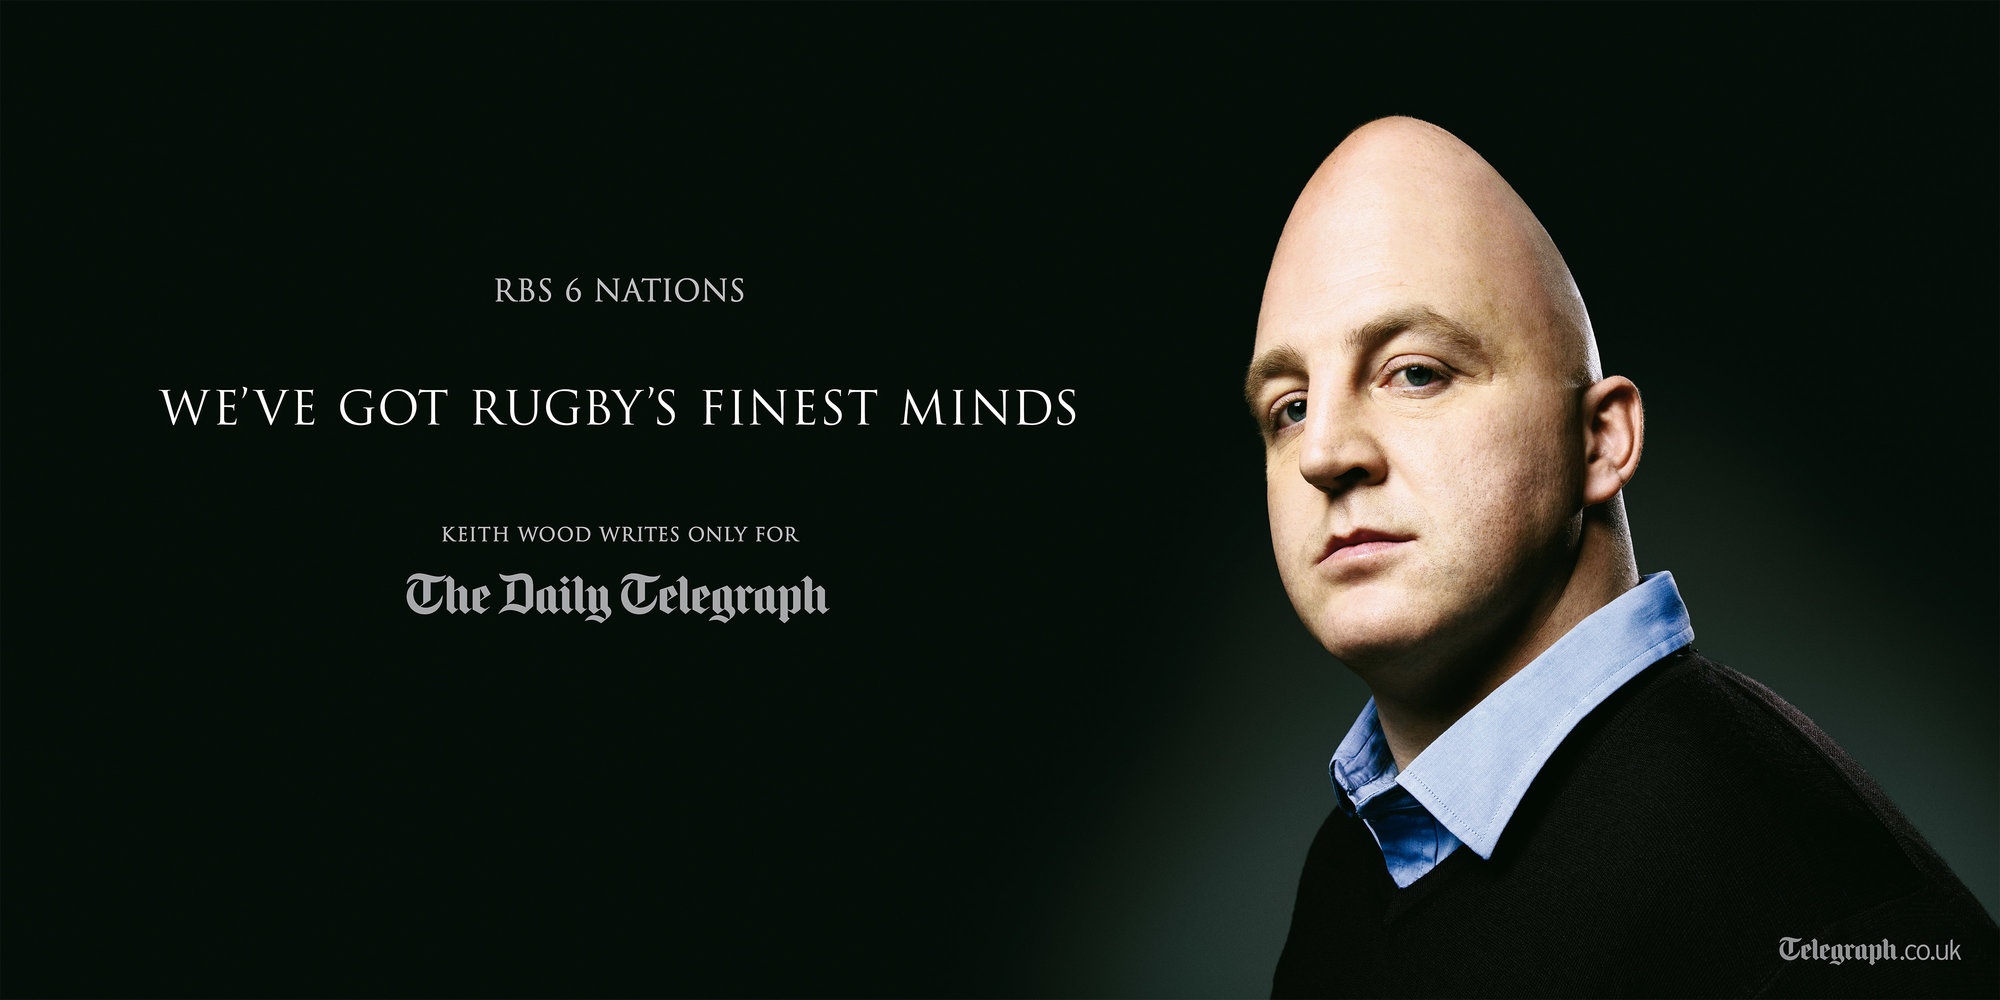 The Daily Telegraph – RBS 6 Nations